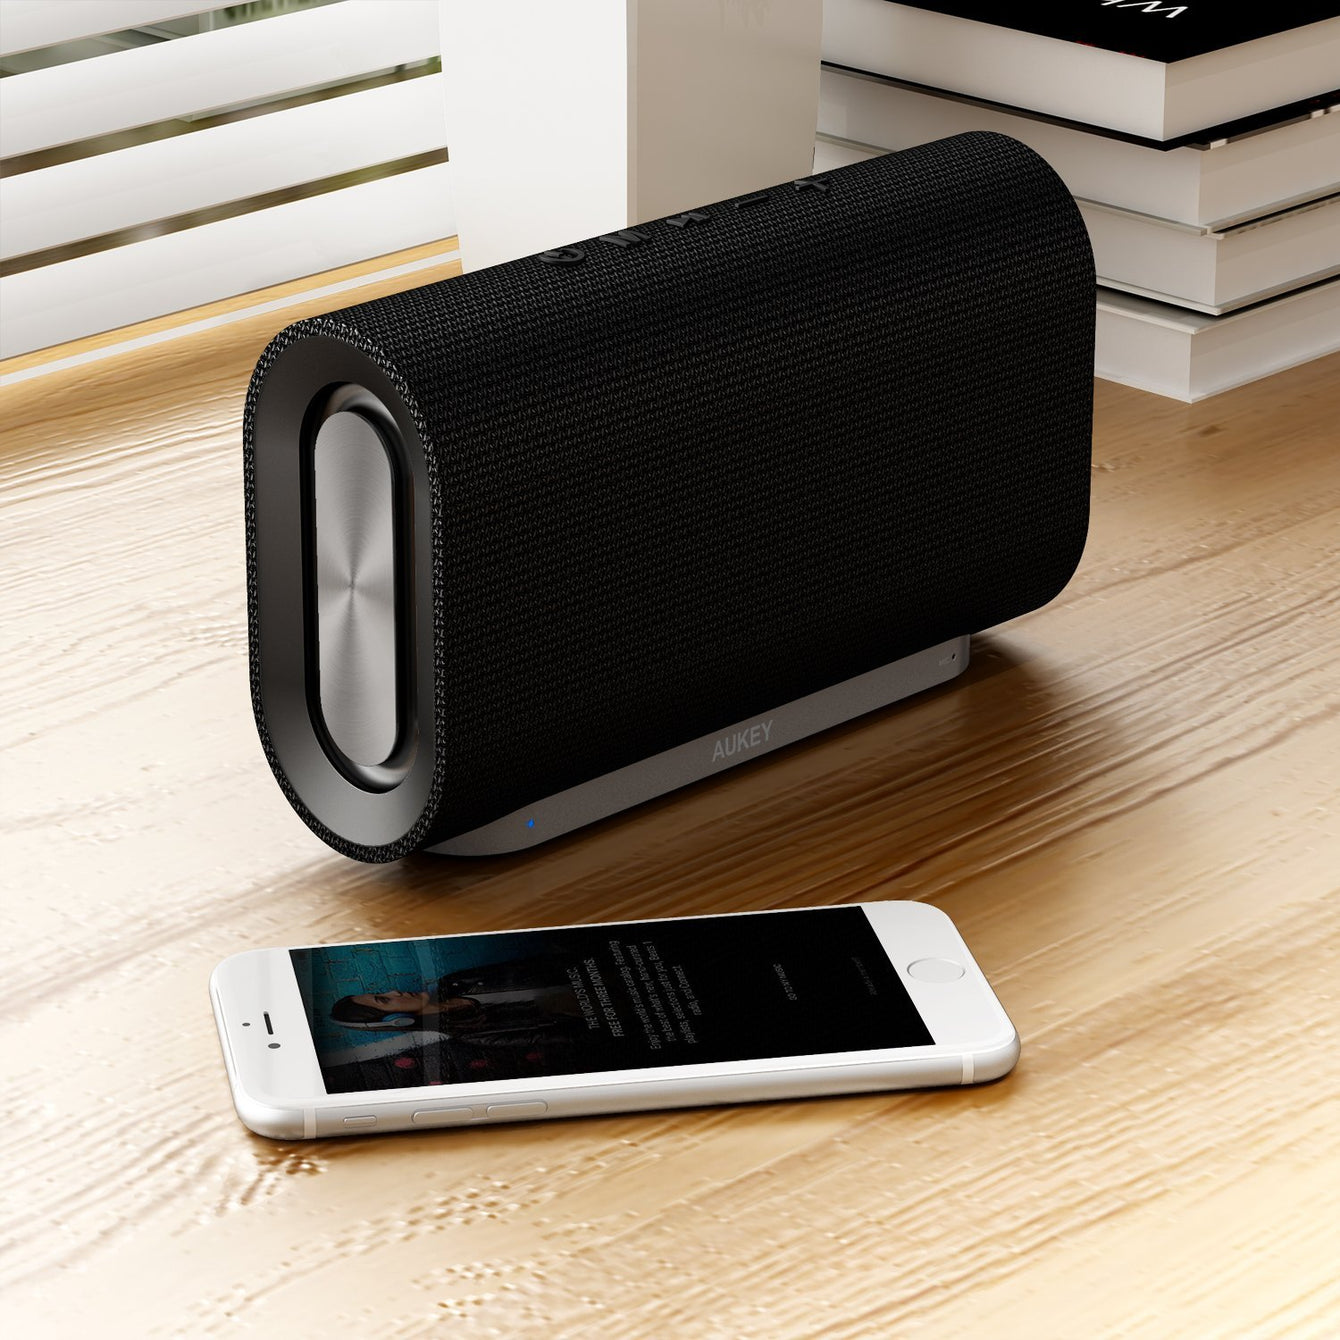 Aukey [SK-M30] Eclipse Bluetooth 4.2 Speaker